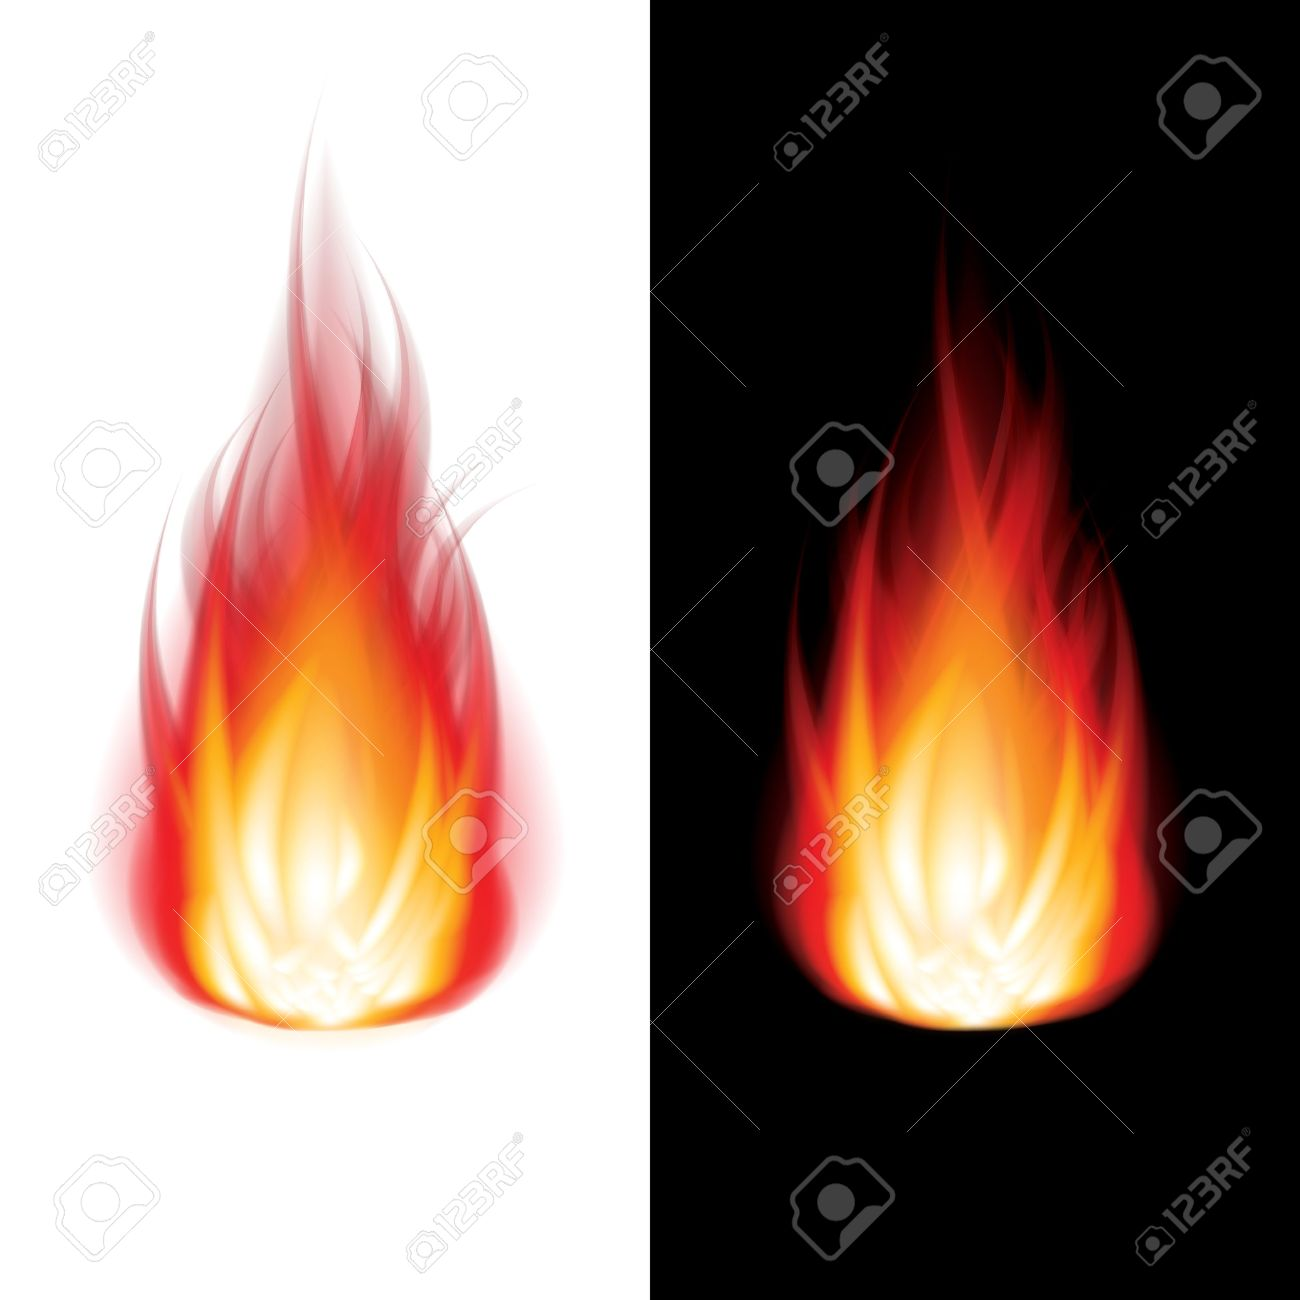 Real fire clipart freeuse library Fire Icon Black And White Background Photo-realistic Vector ... freeuse library